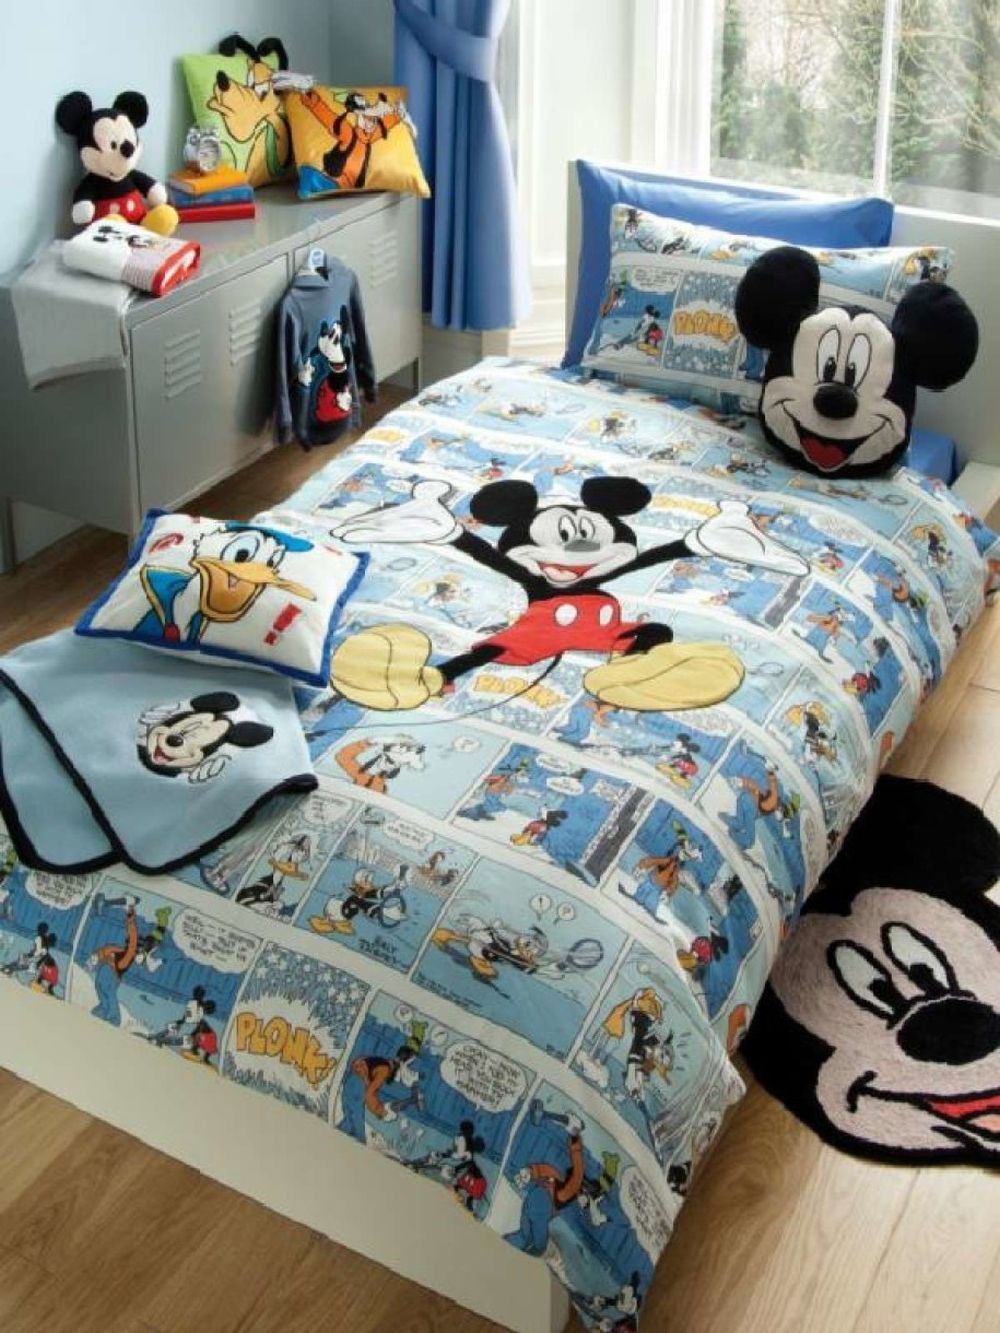 small bedrom design with Mickey mouse accessories and pillow plus cabinet